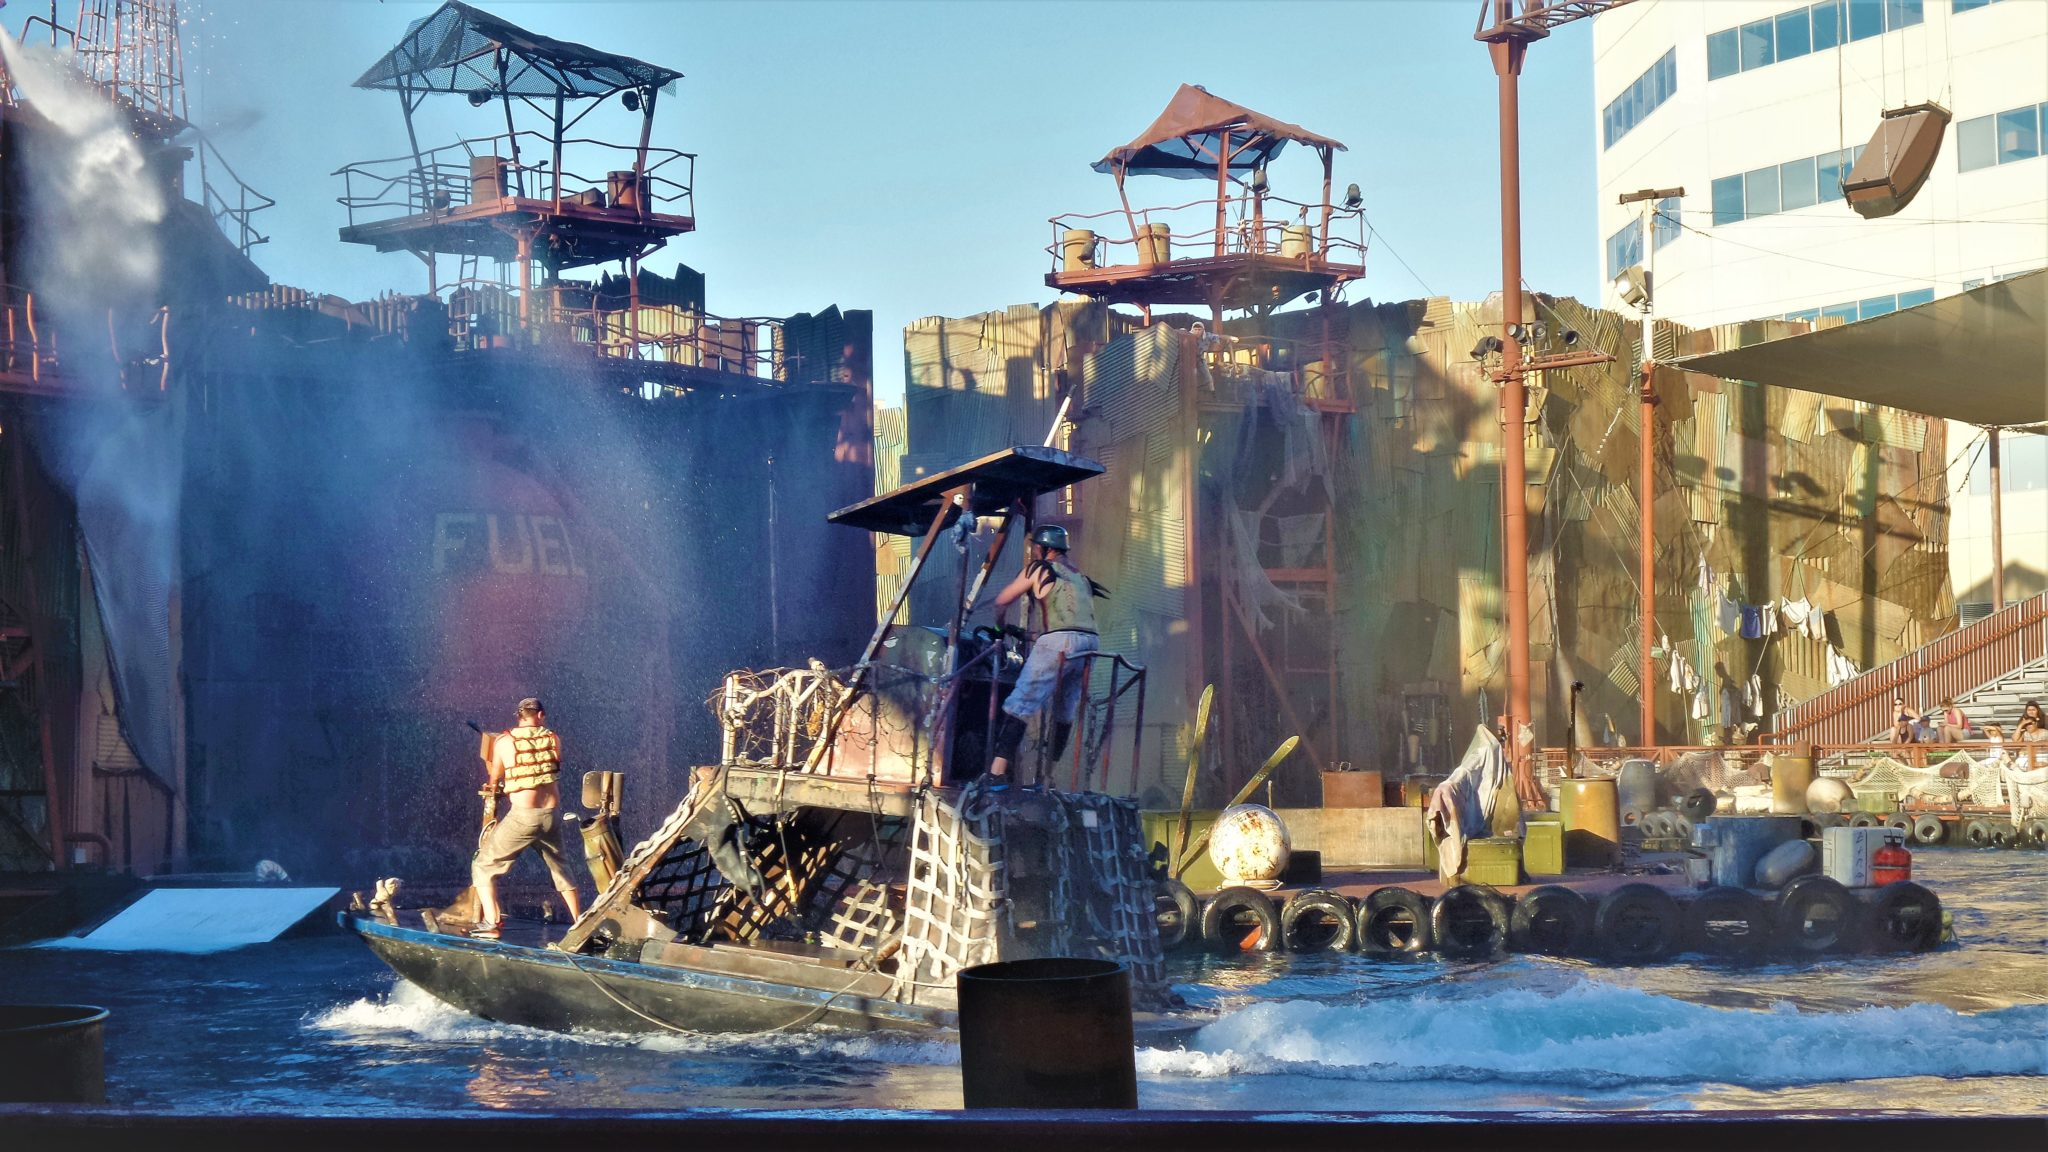 Waterworld jet ski, Universal Studios Hollywood